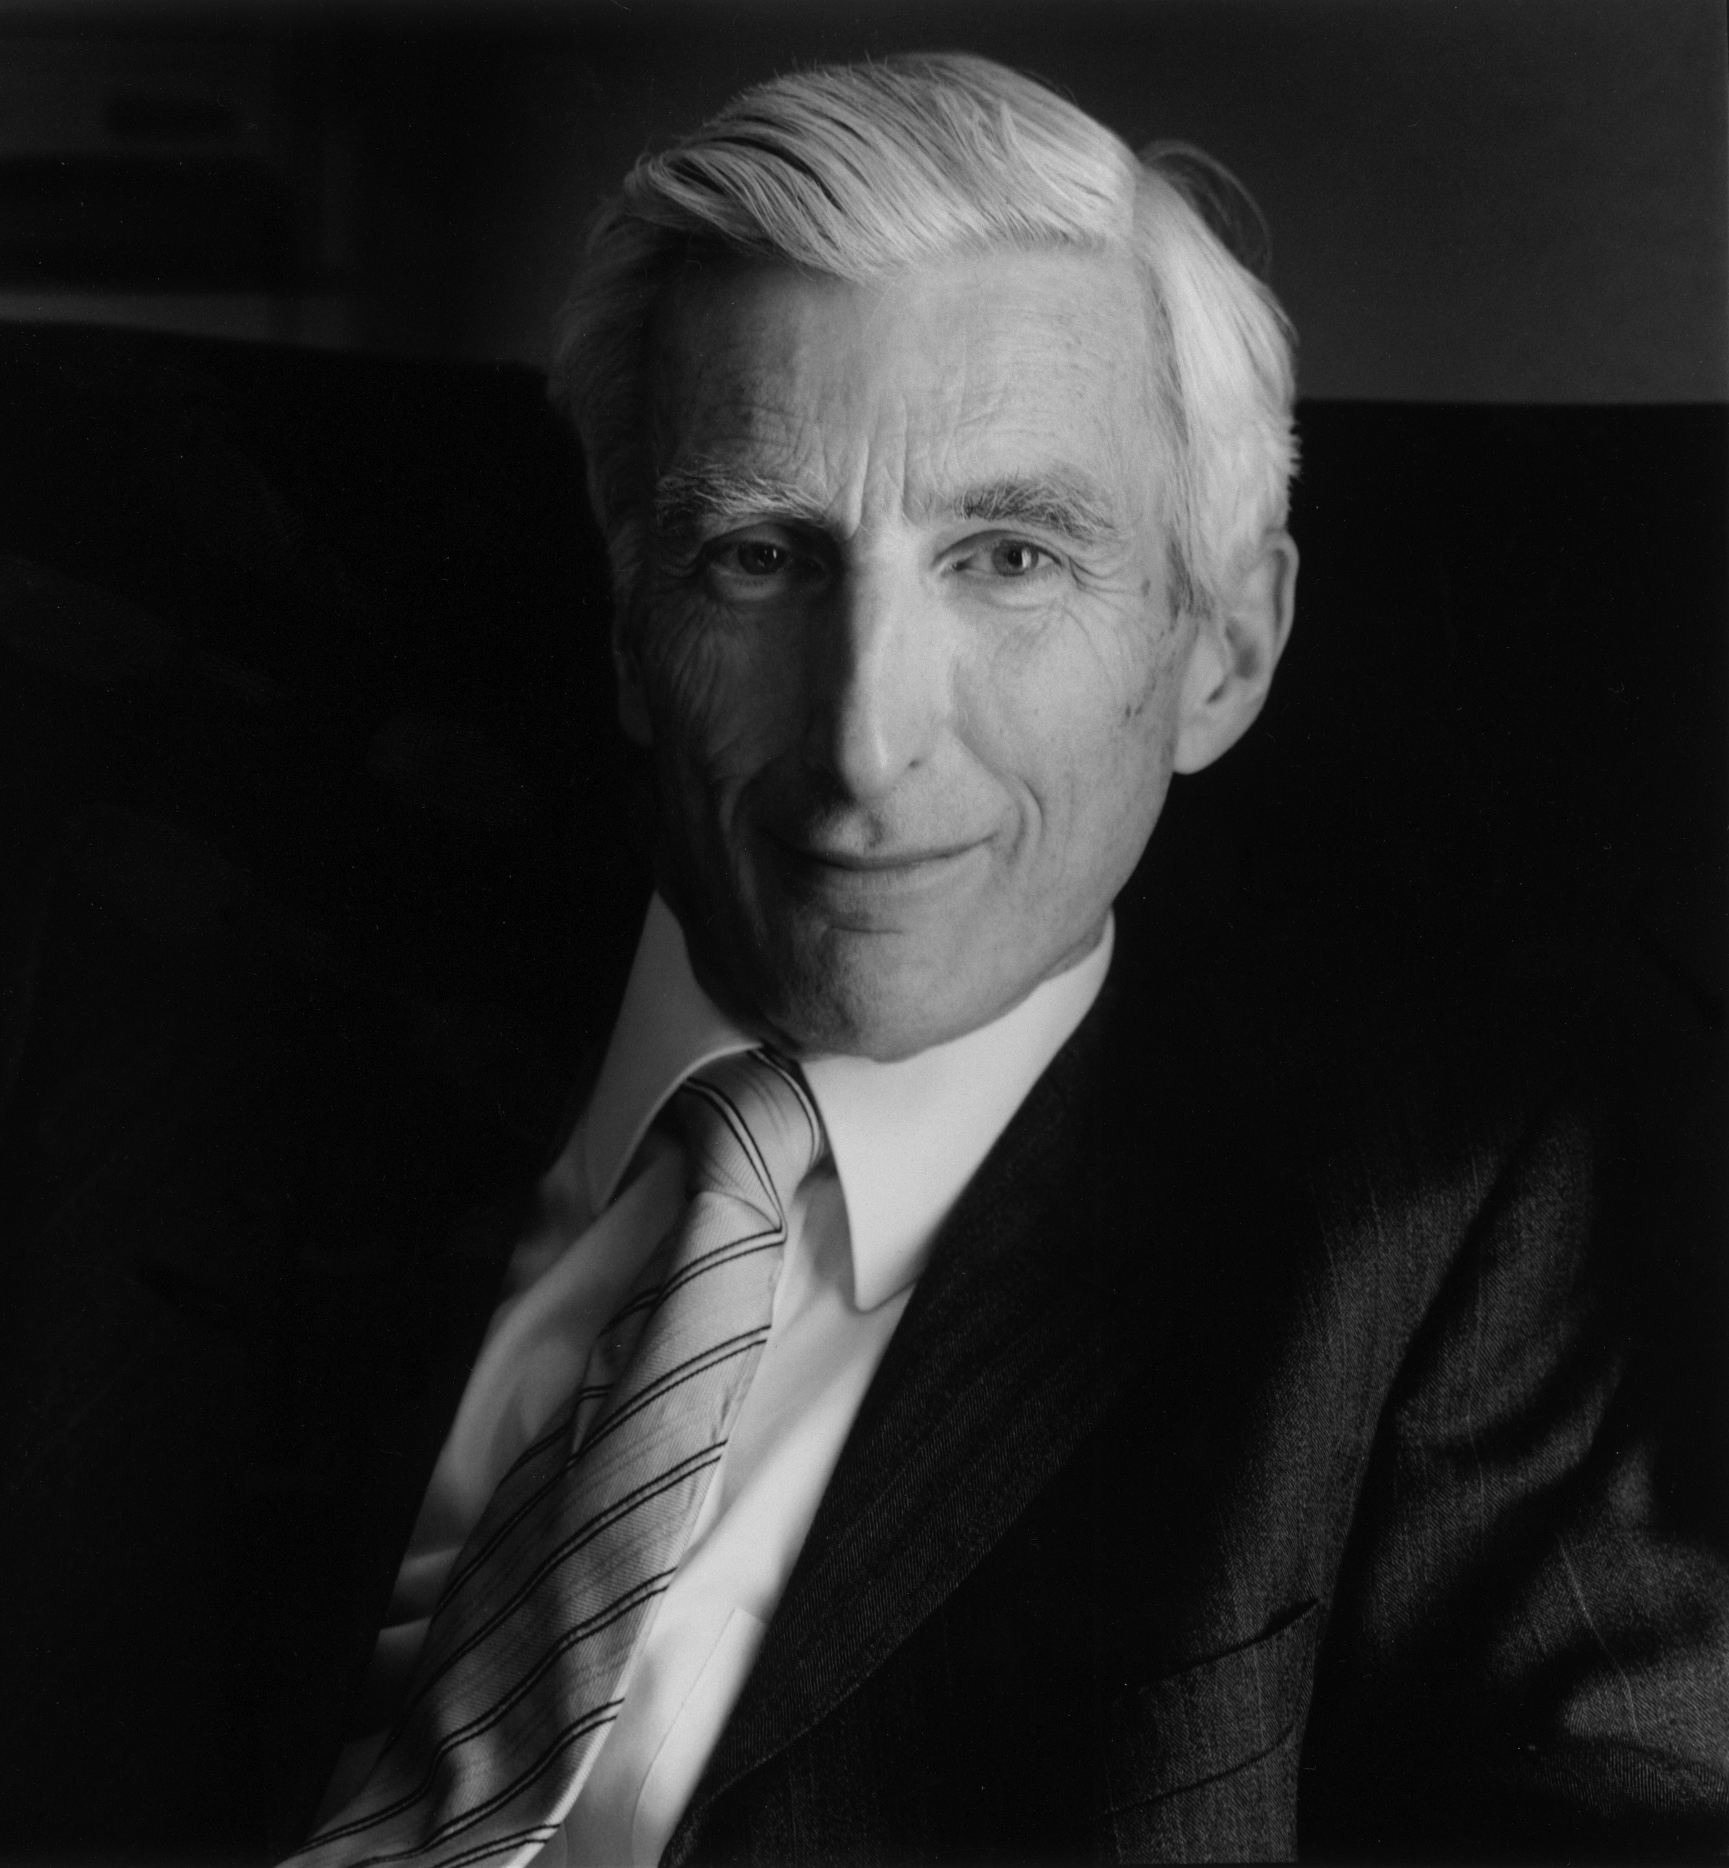 photoprofmartinrees